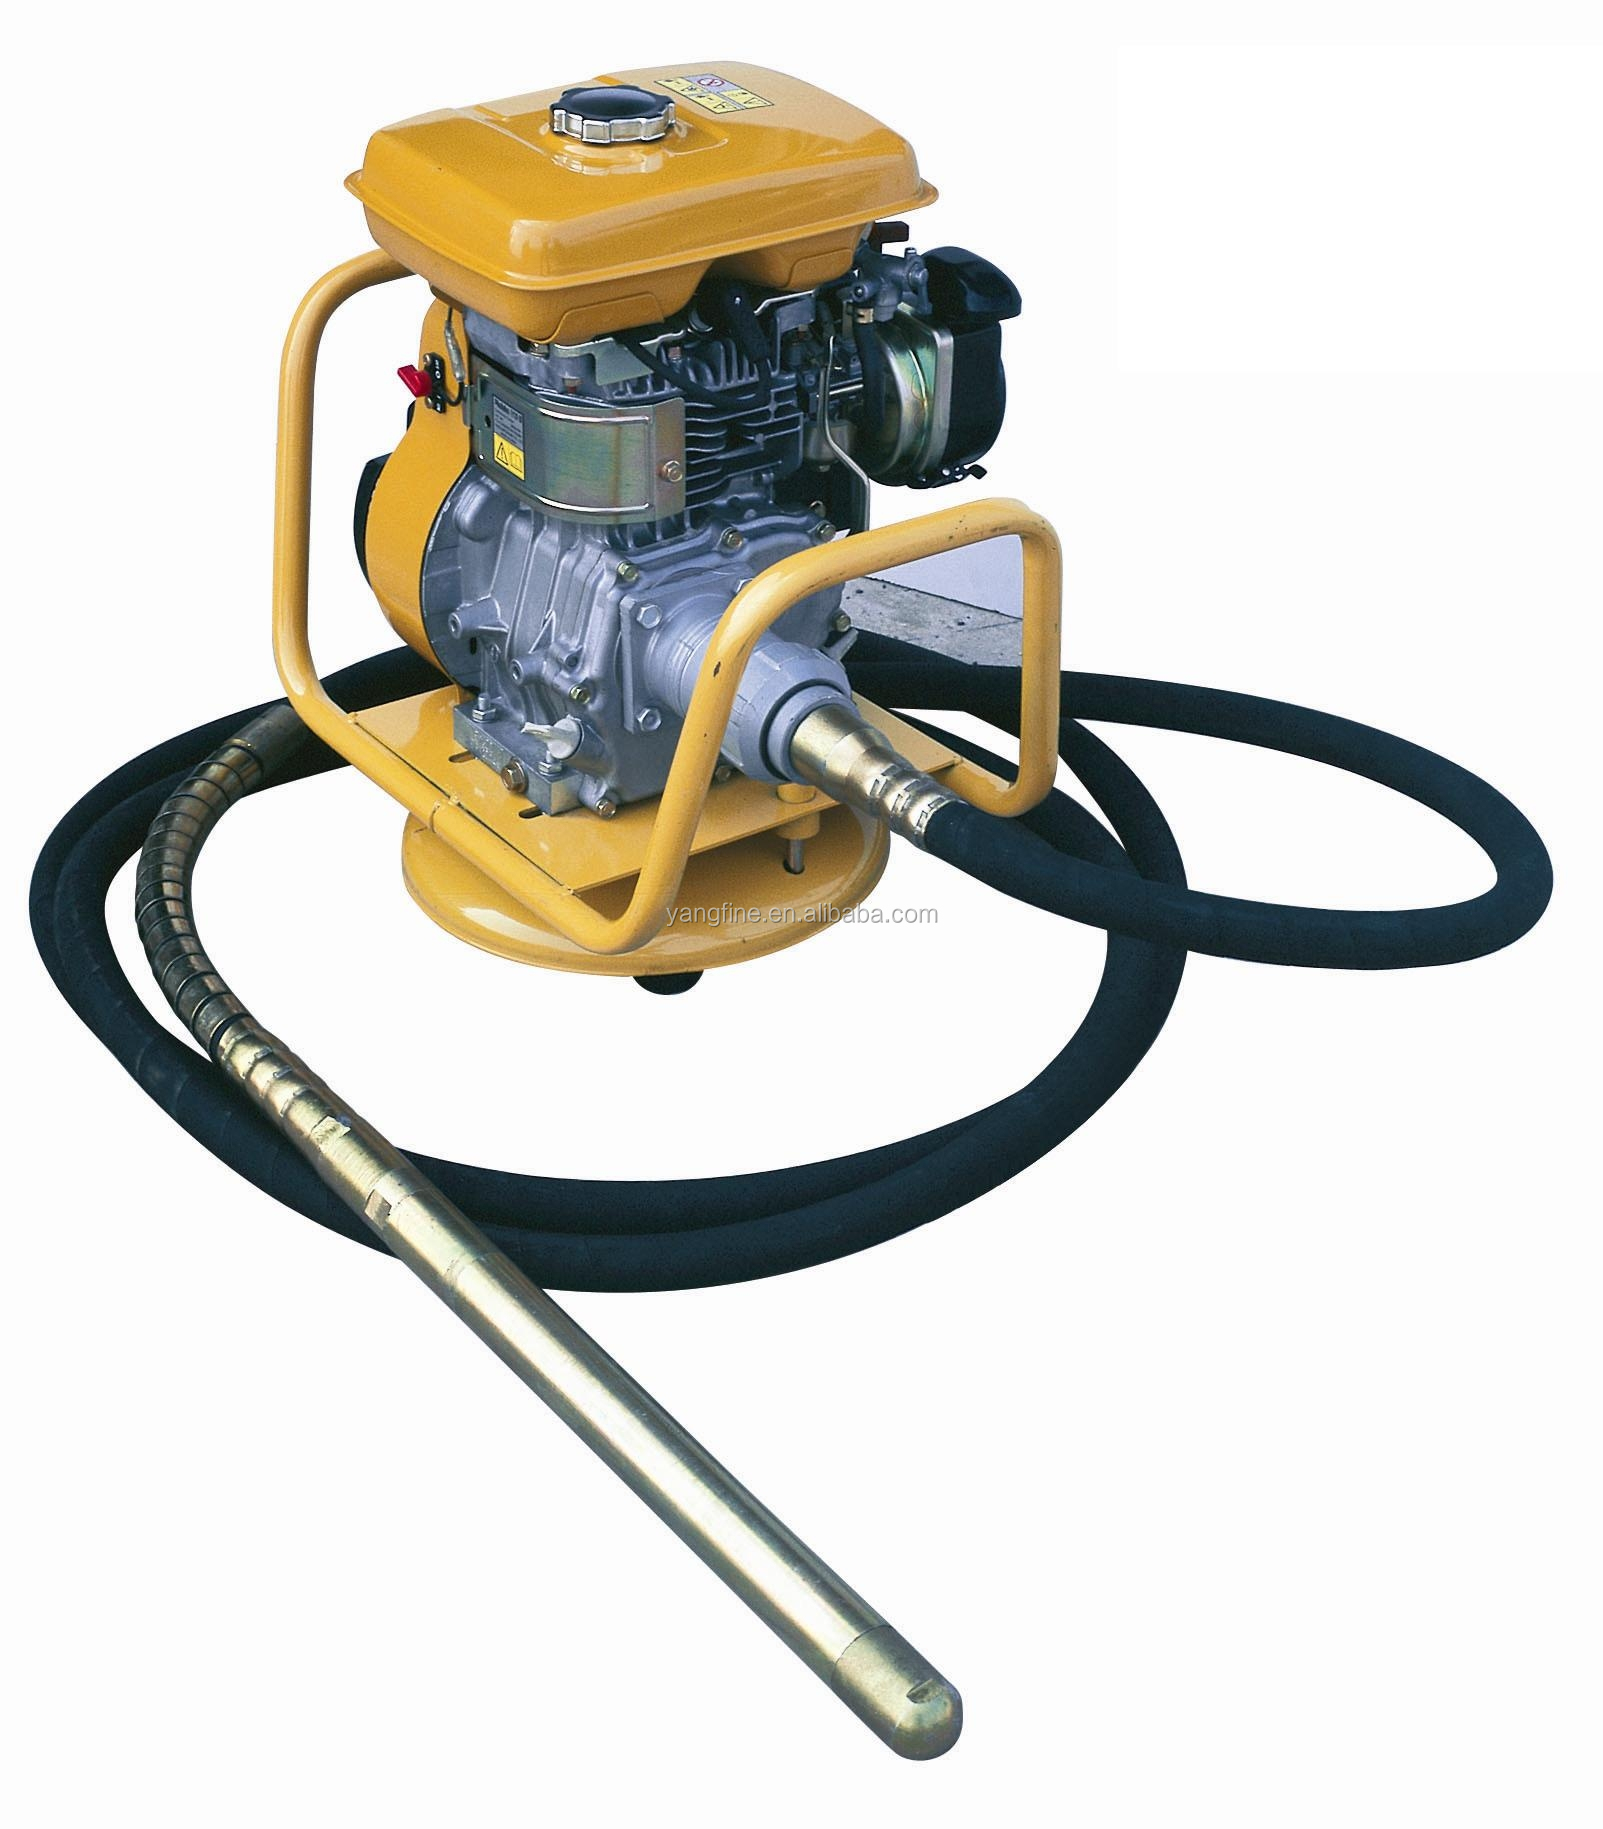 Hot Sale!!!New Gasoline Engine Concrete Vibrator with Honda Engine/Robin Engine,Liaocheng Manufacturer